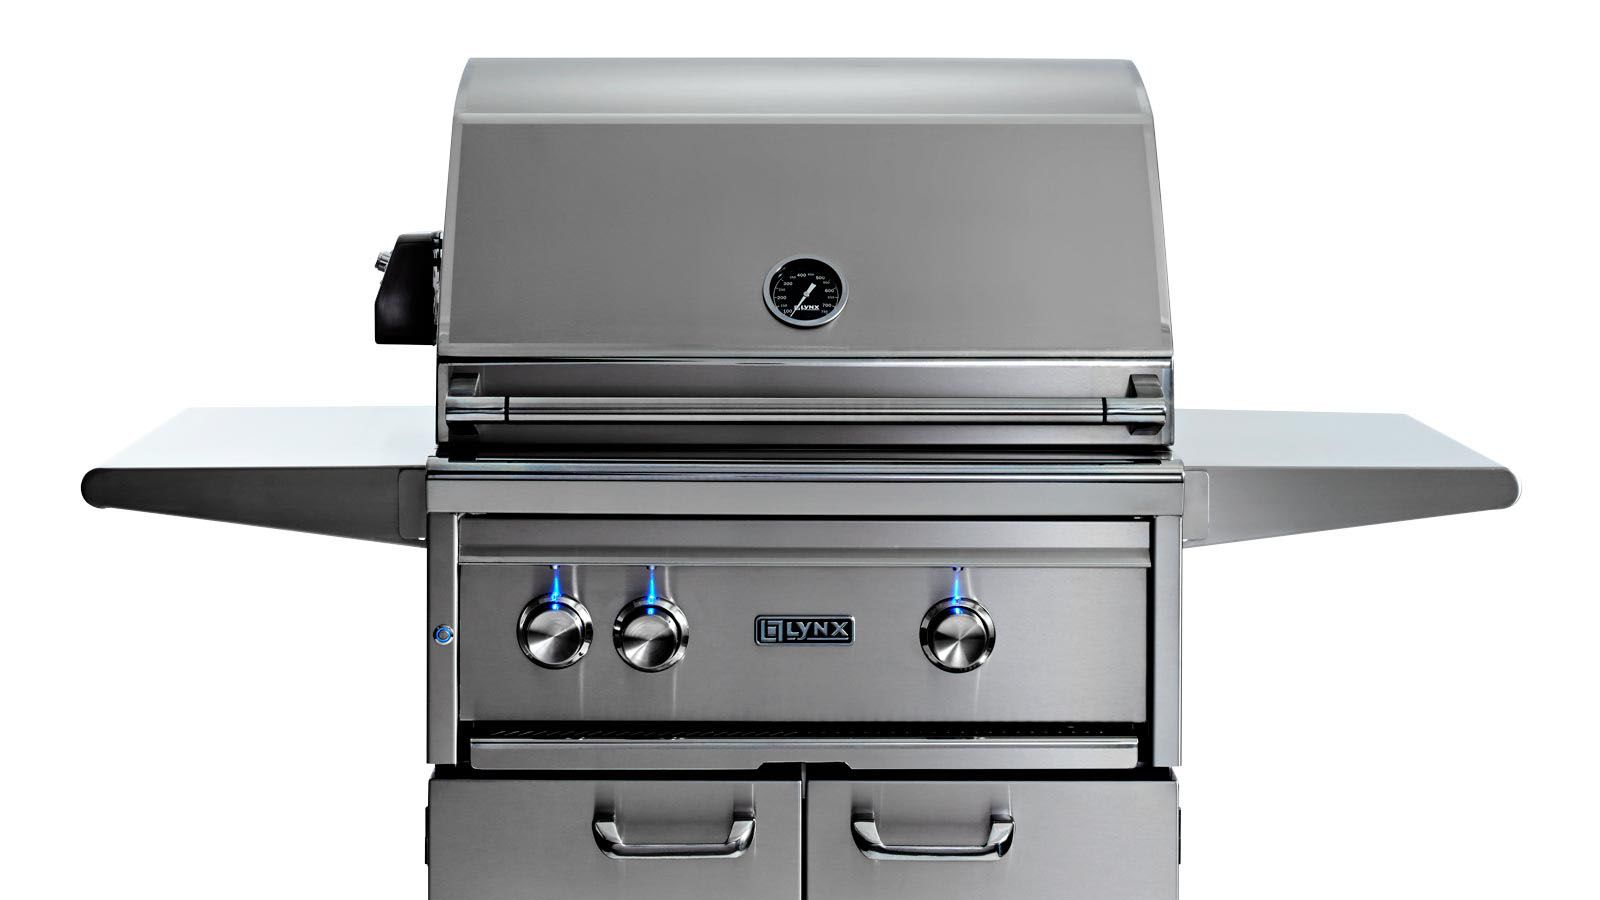 A Lynx Professional 27-inch propane grill that now sells for about $3,000 would cost about $350 more, because of President Donald Trump's decision to impose tariffs on $48 billion in imported steel and aluminum.